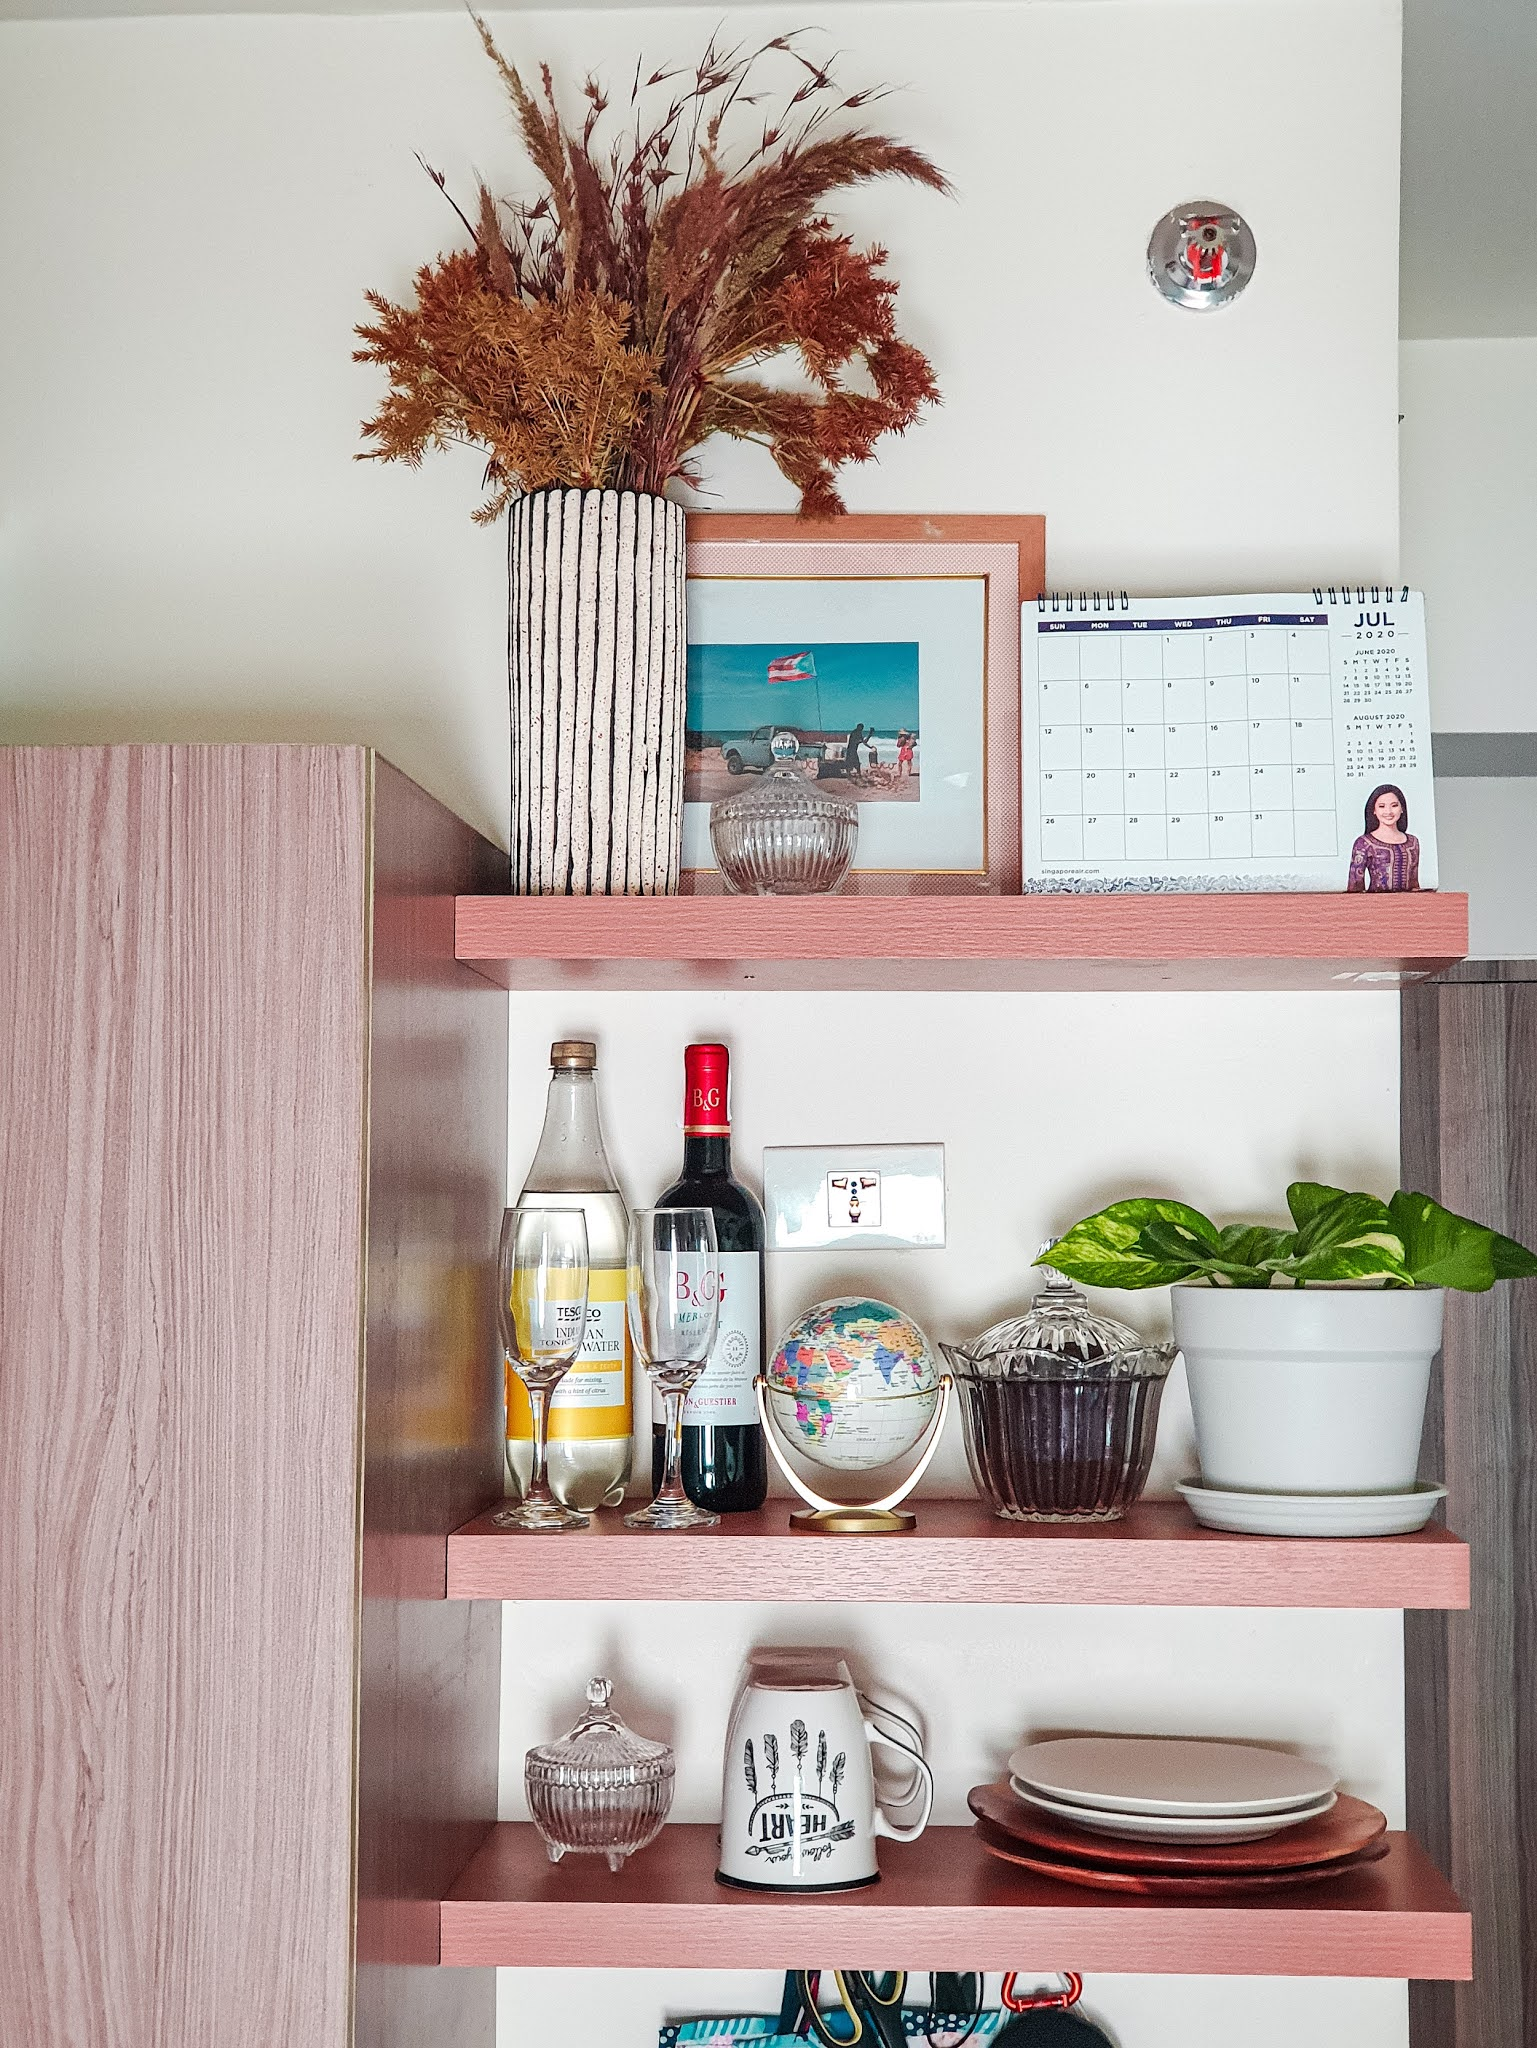 DIY Home: Kitchen Shelves, Kitchen Shelves Ideas